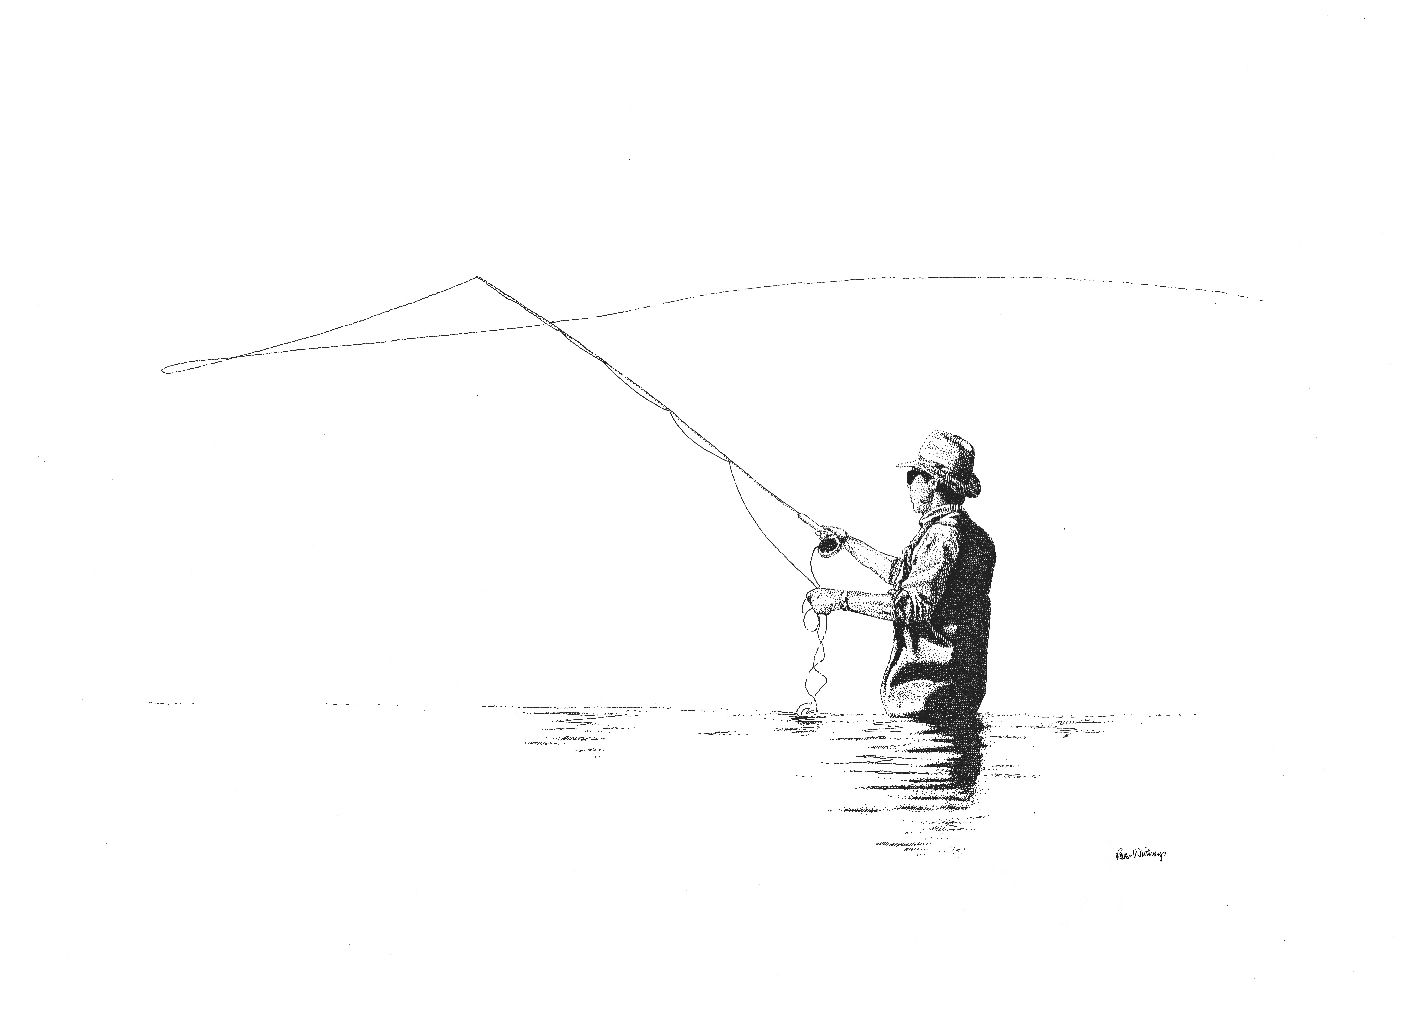 Fly fishing fly drawings - photo#1